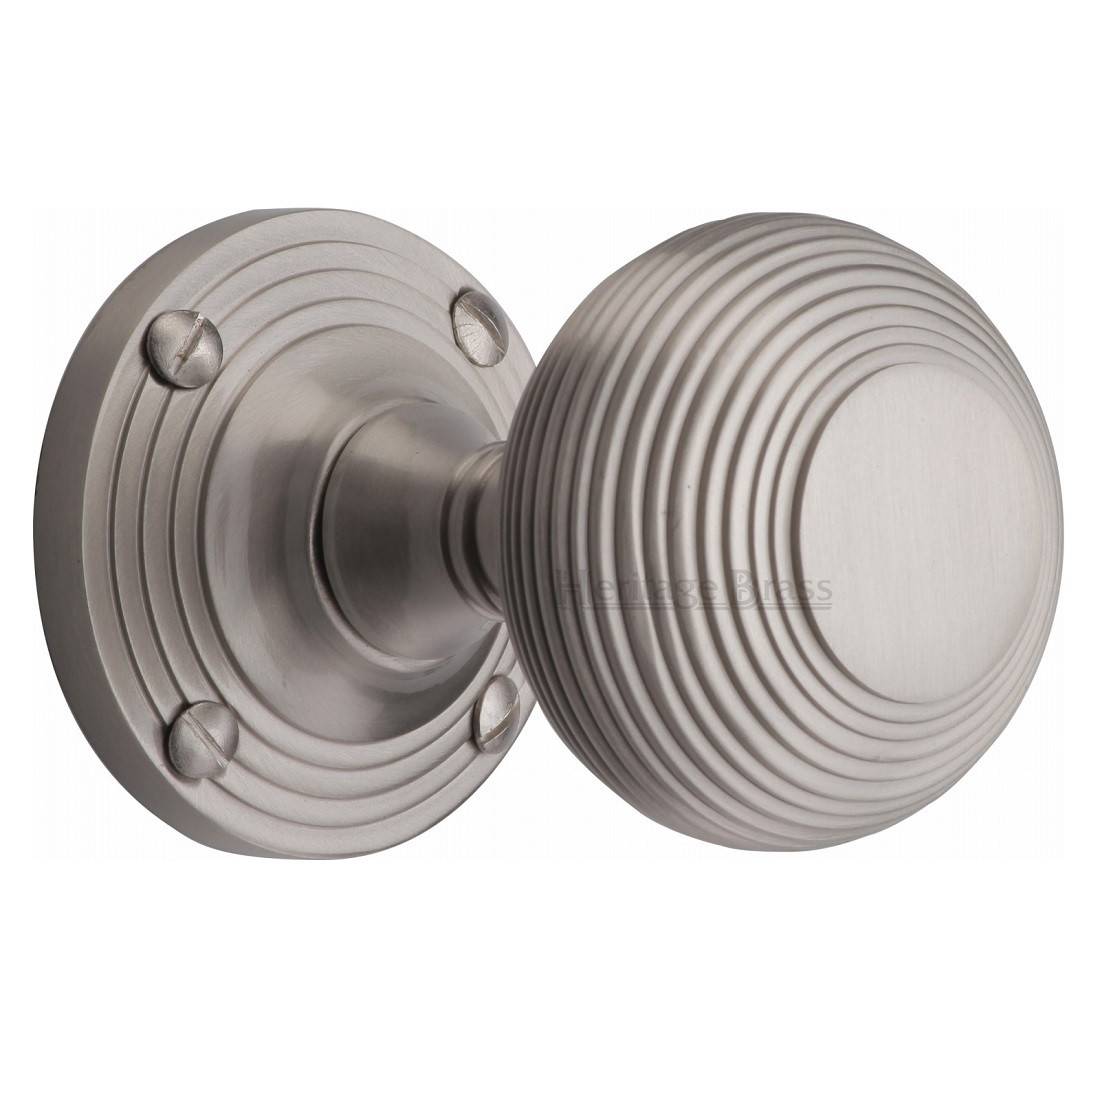 M Marcus Reeded Mortice Knob Handles On Round Rose Satin